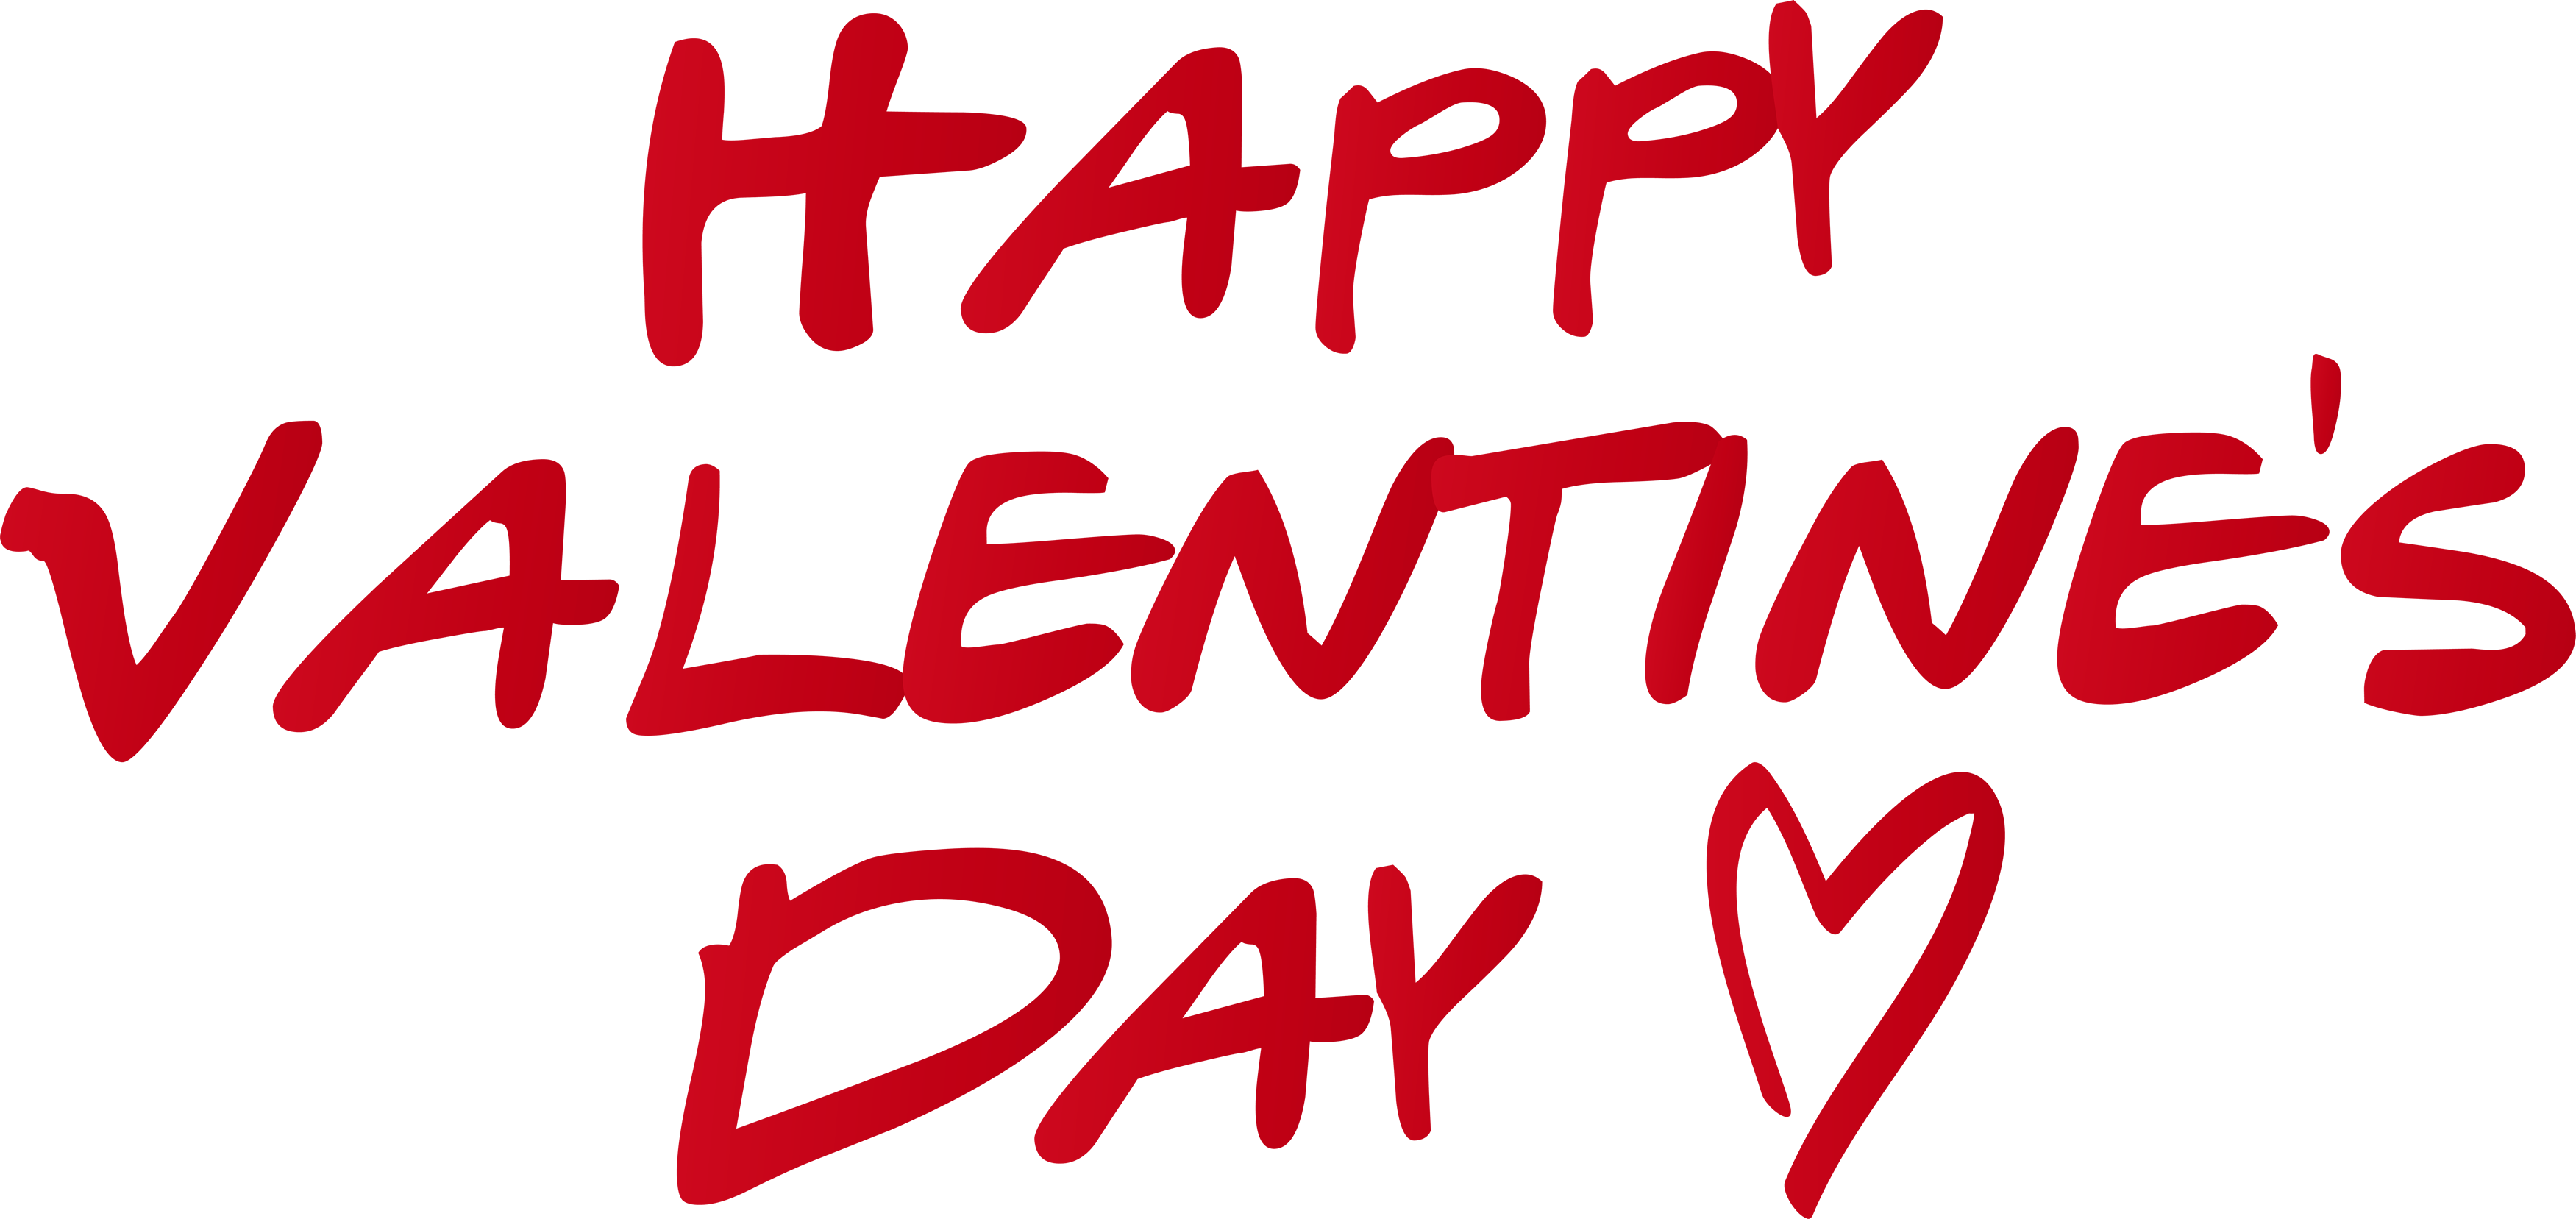 Download valentine free transparent. Valentines png graphic royalty free library